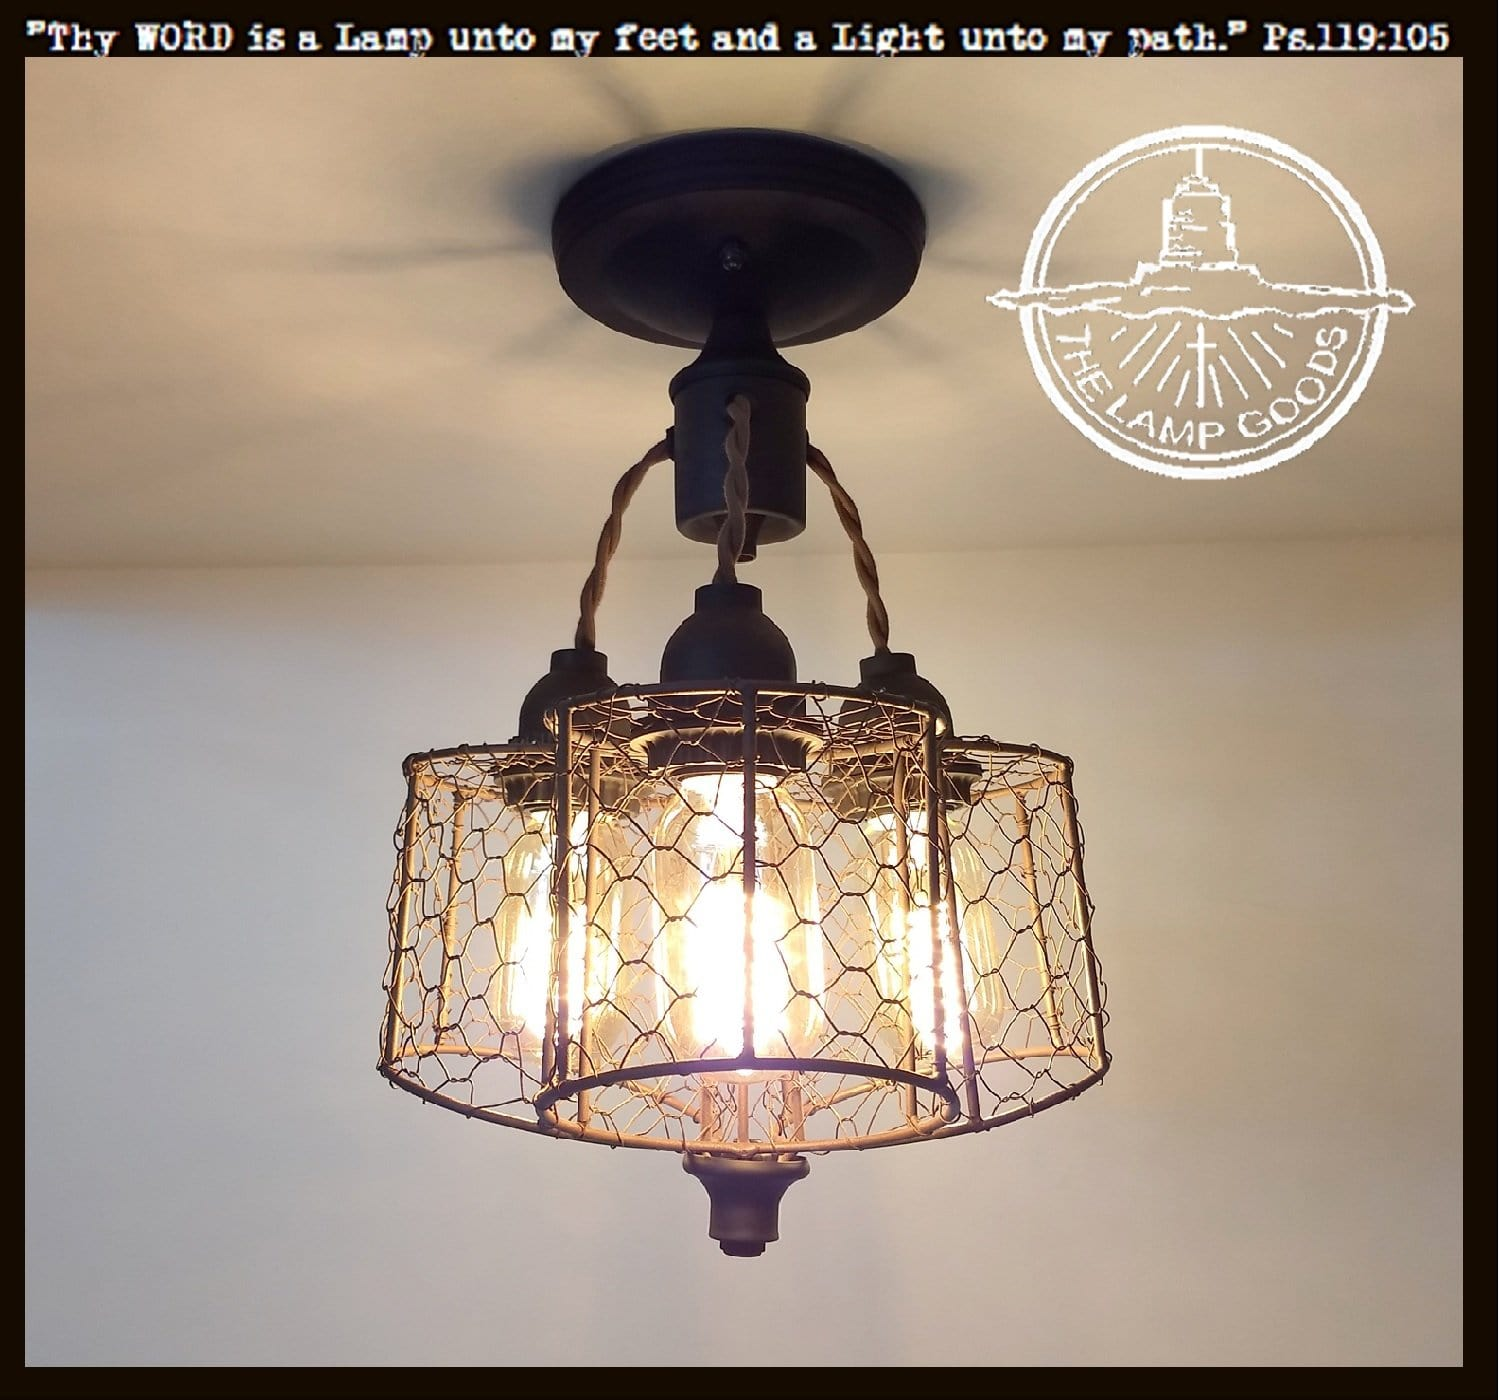 Chicken wire ceiling light trio the lamp goods